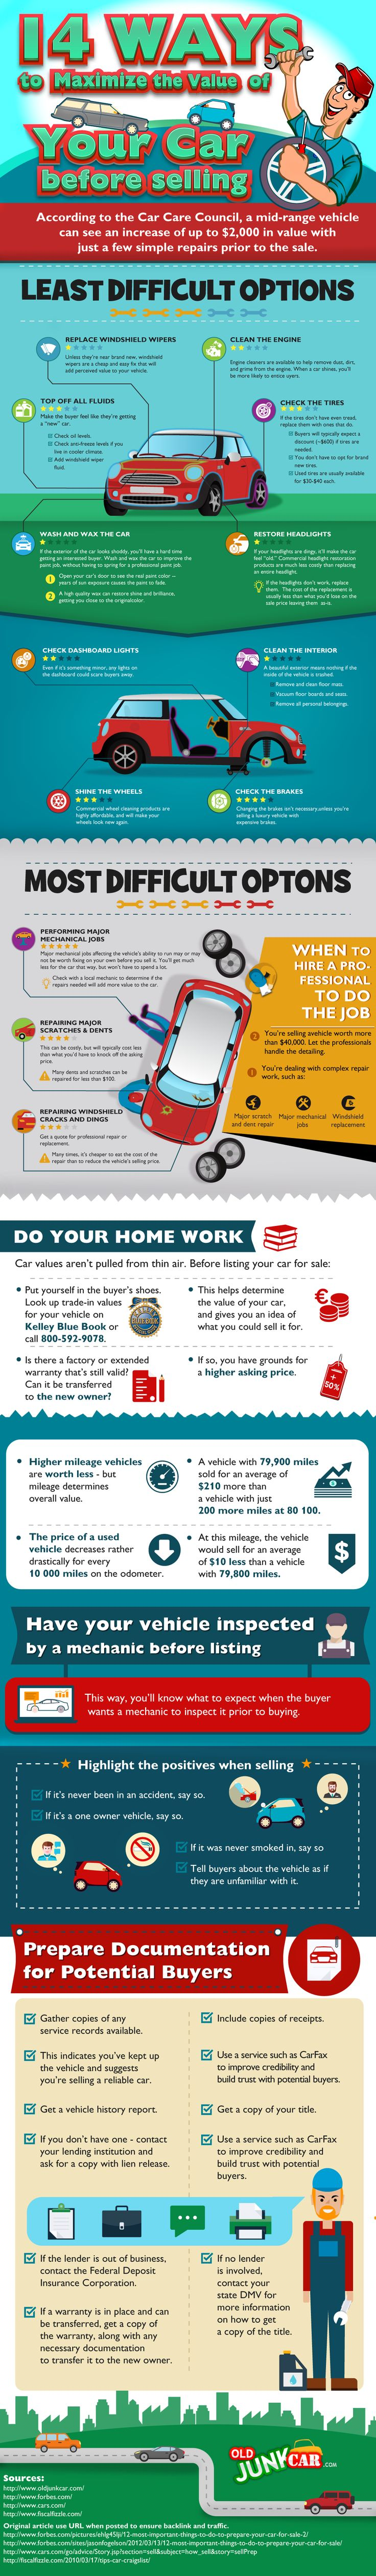 Selling a used car isn't fun, especially if you aren't a car person. Old Junk Car has an infographic that ranks ...